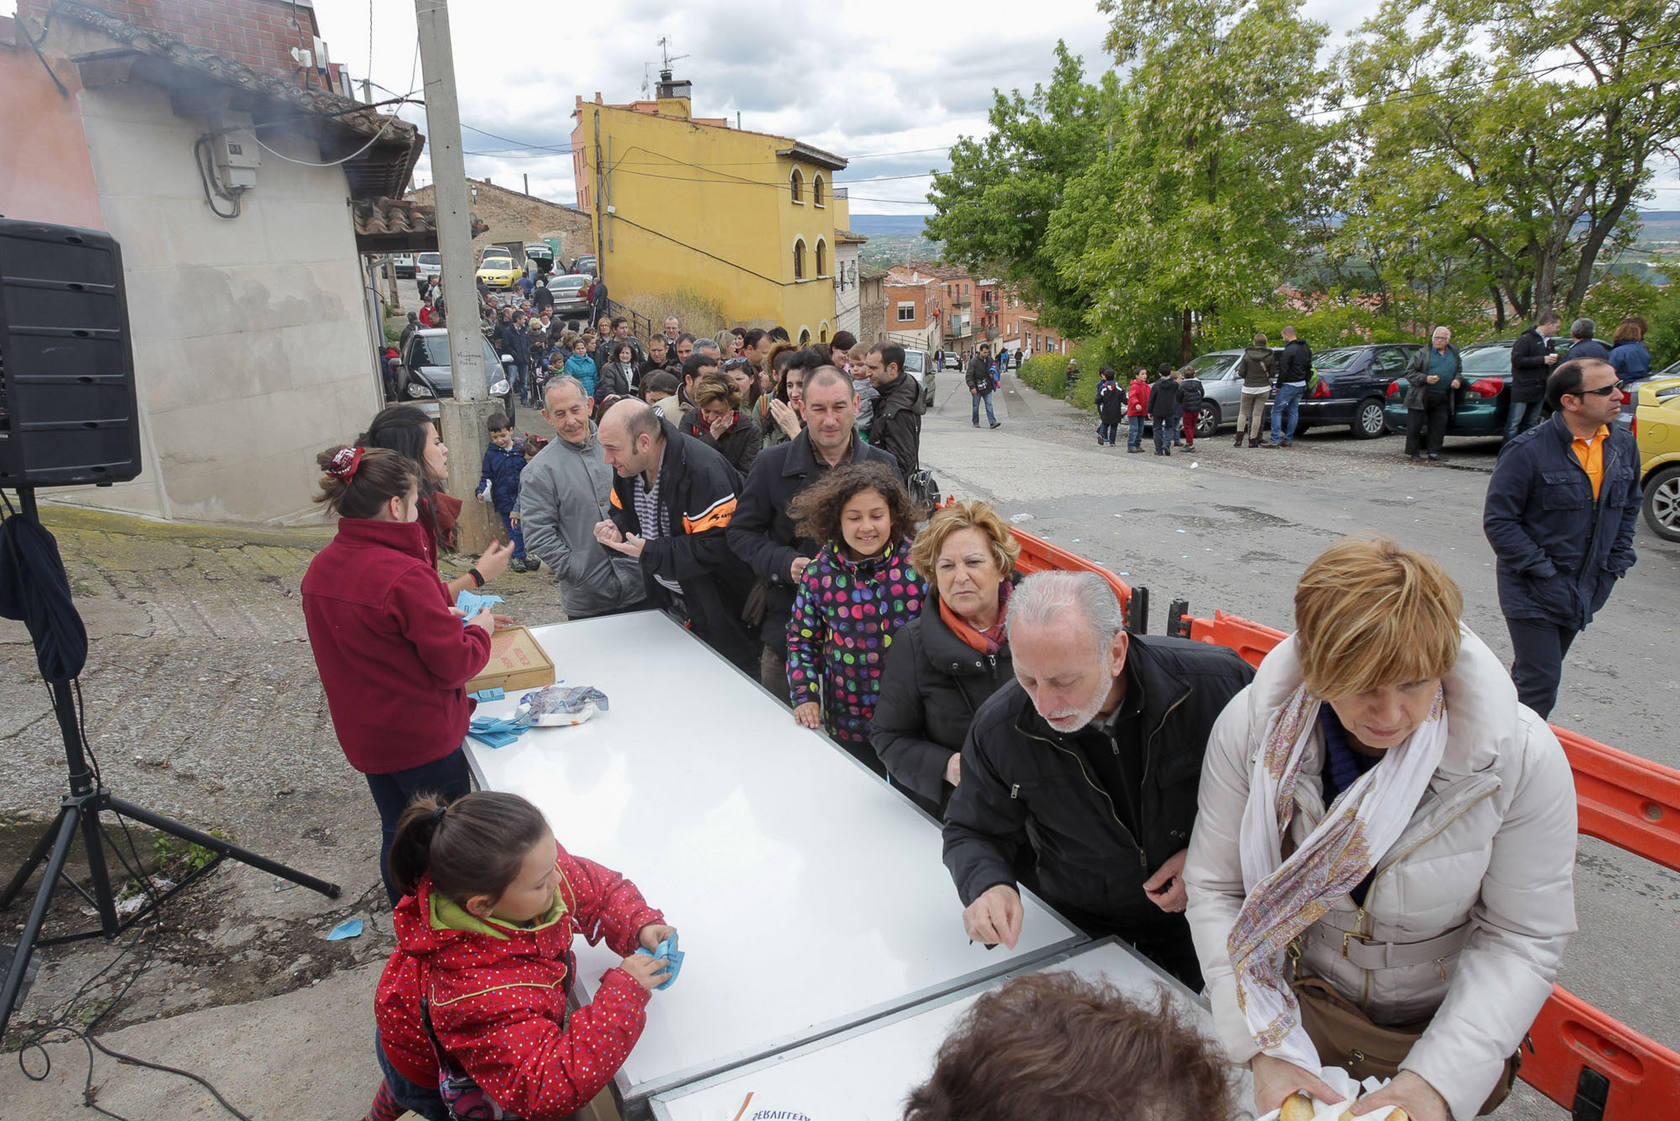 Villamediana celebra San Isidro con actos como una degustaci&oacute;n